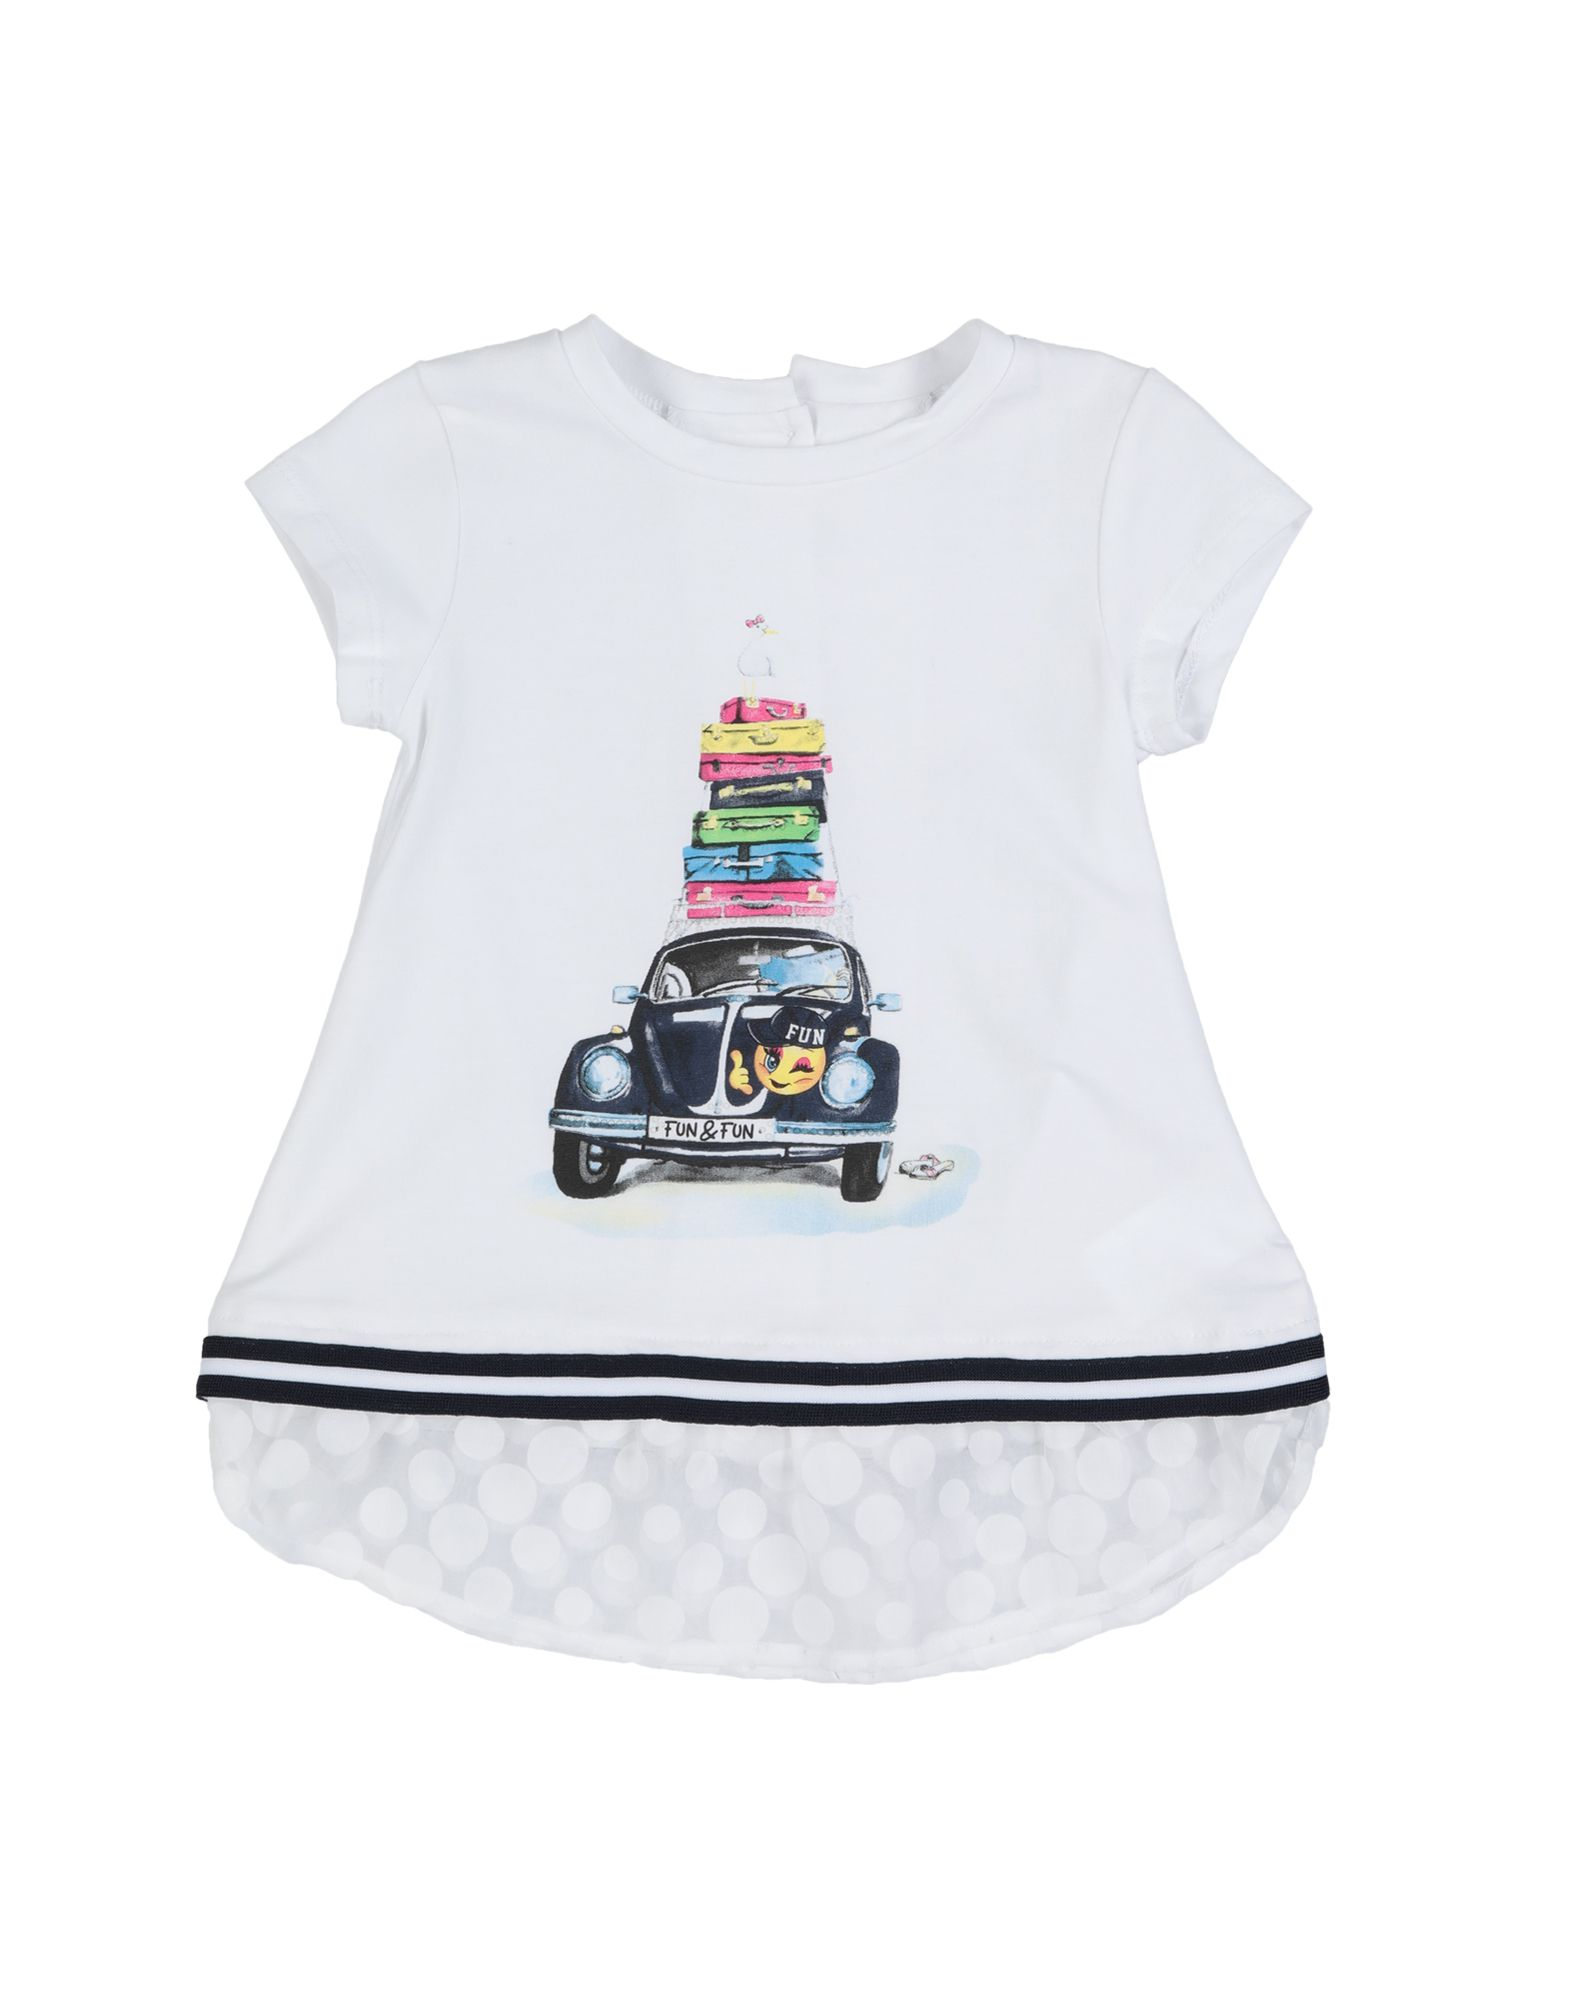 FUN & FUN T-shirts Kinder Weiß von FUN & FUN